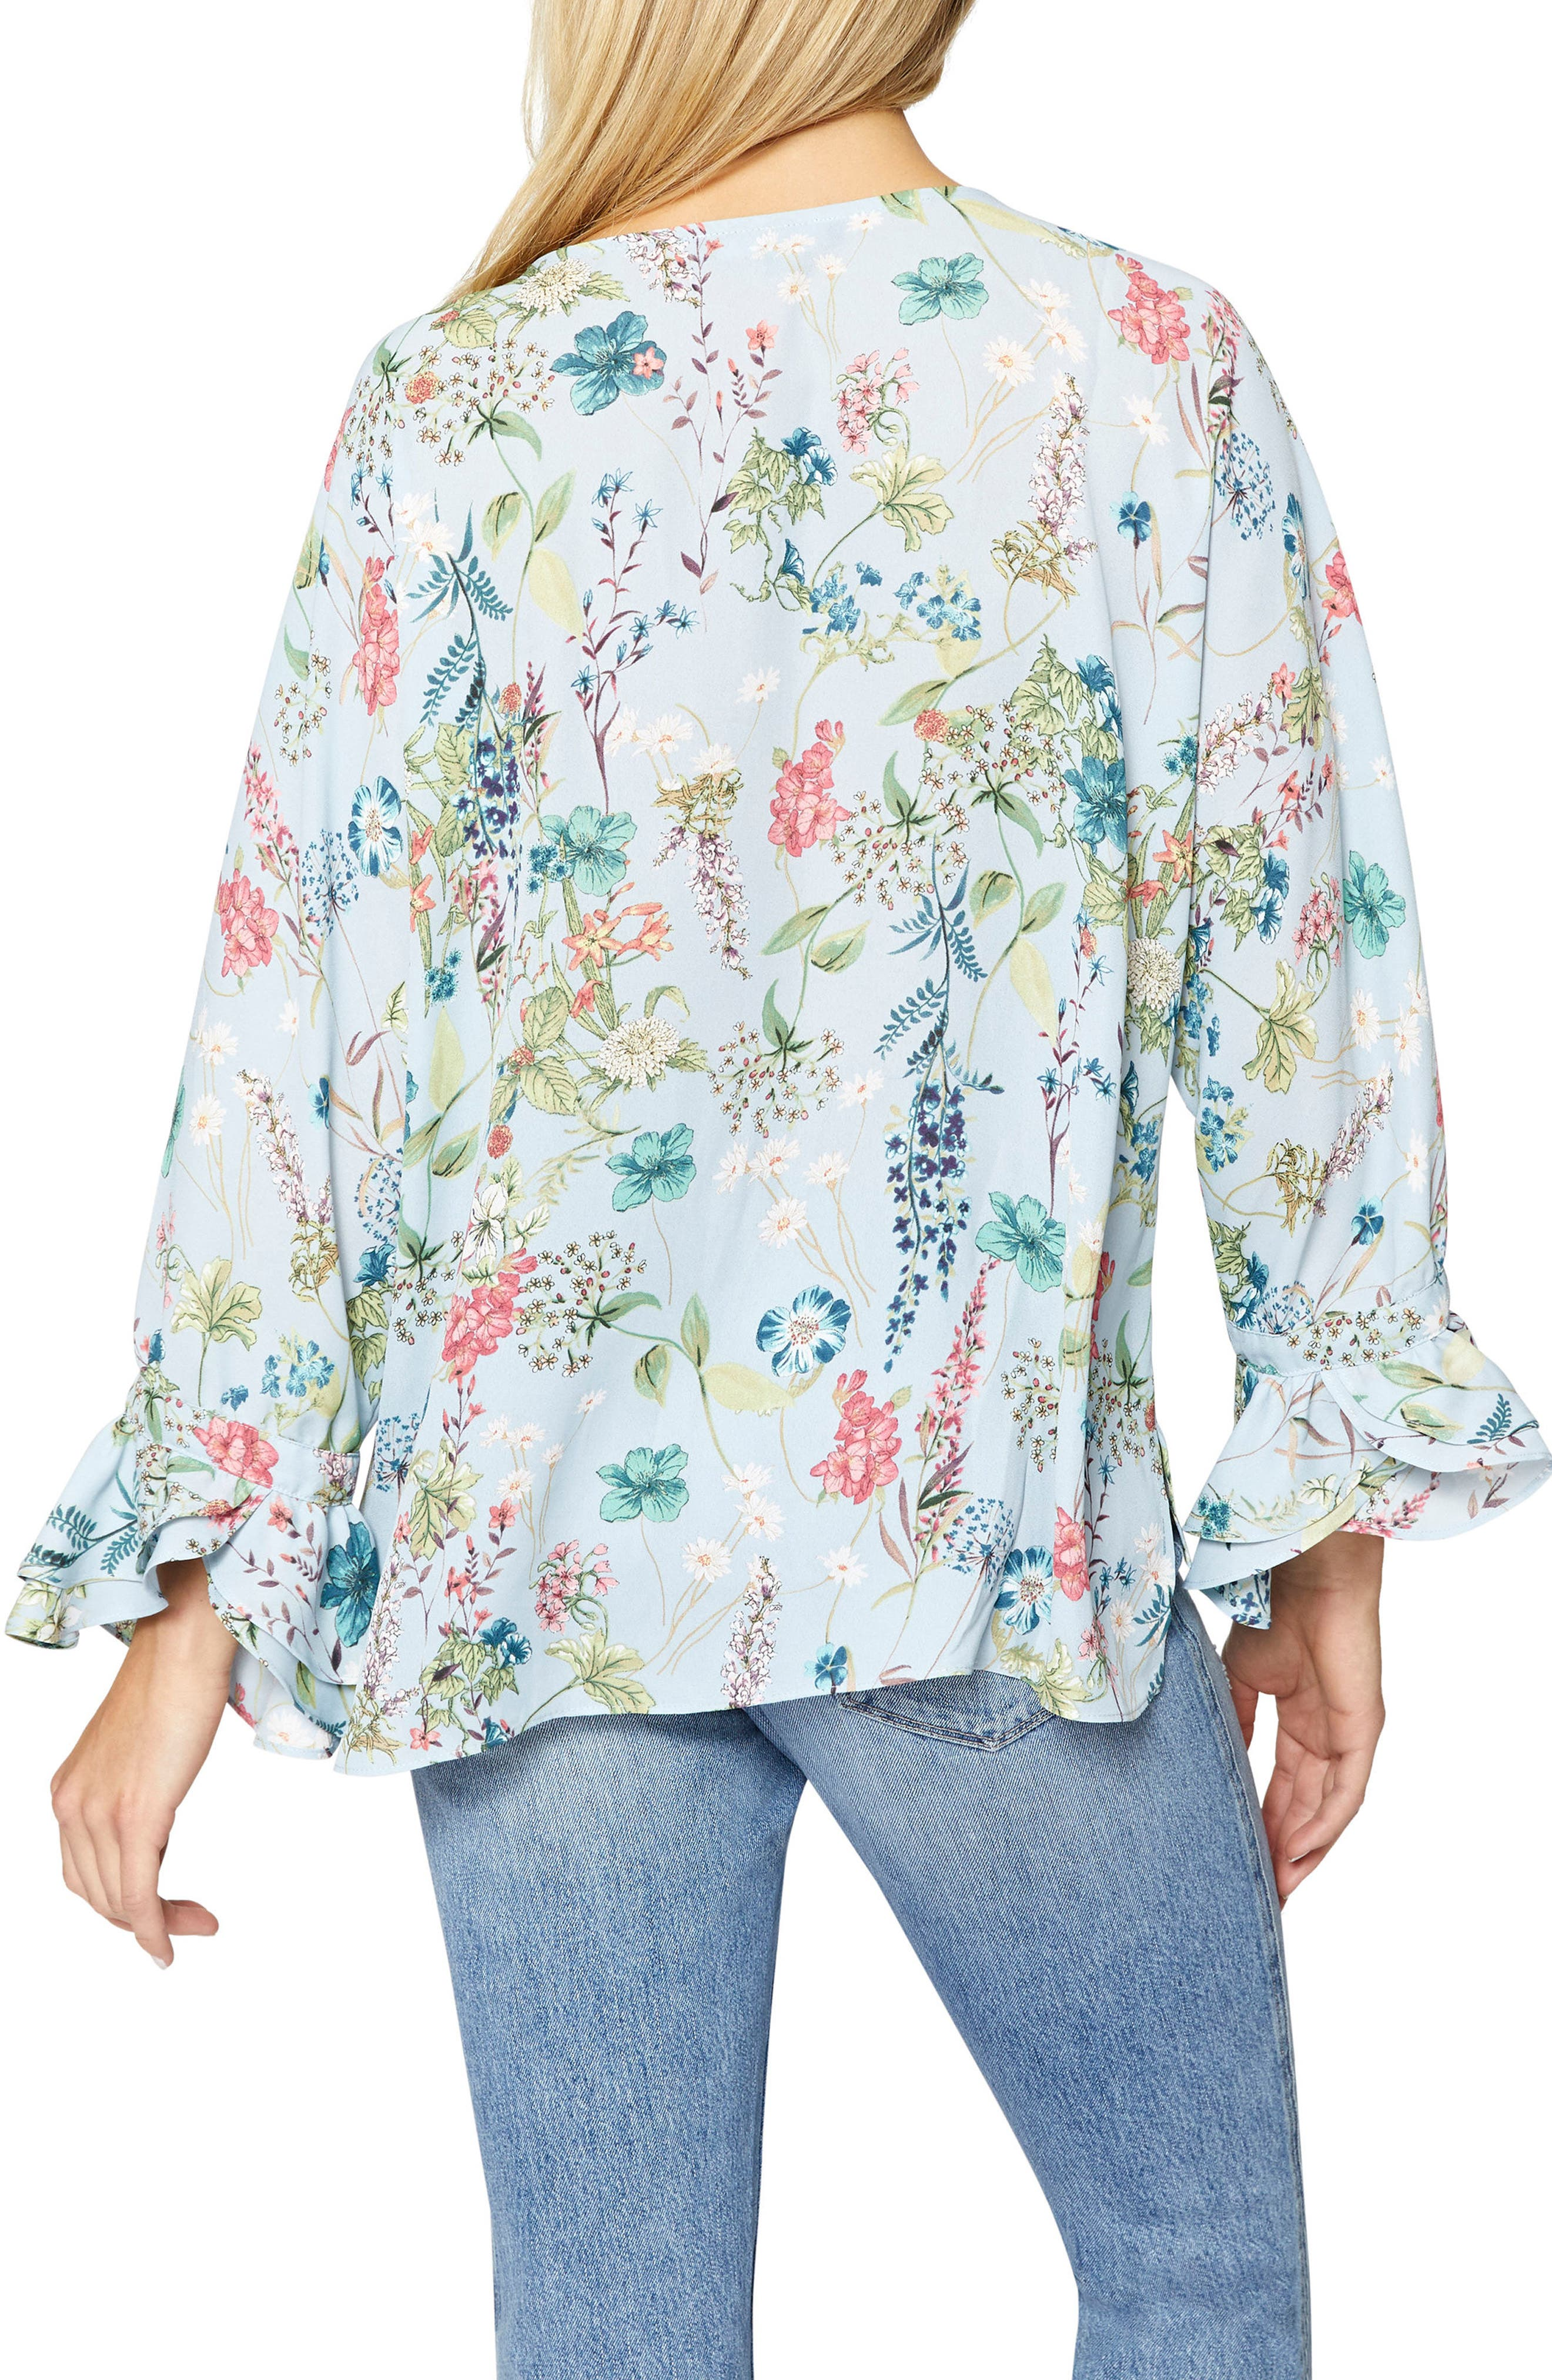 Posey Floral Blouse,                             Alternate thumbnail 2, color,                             Bluebell